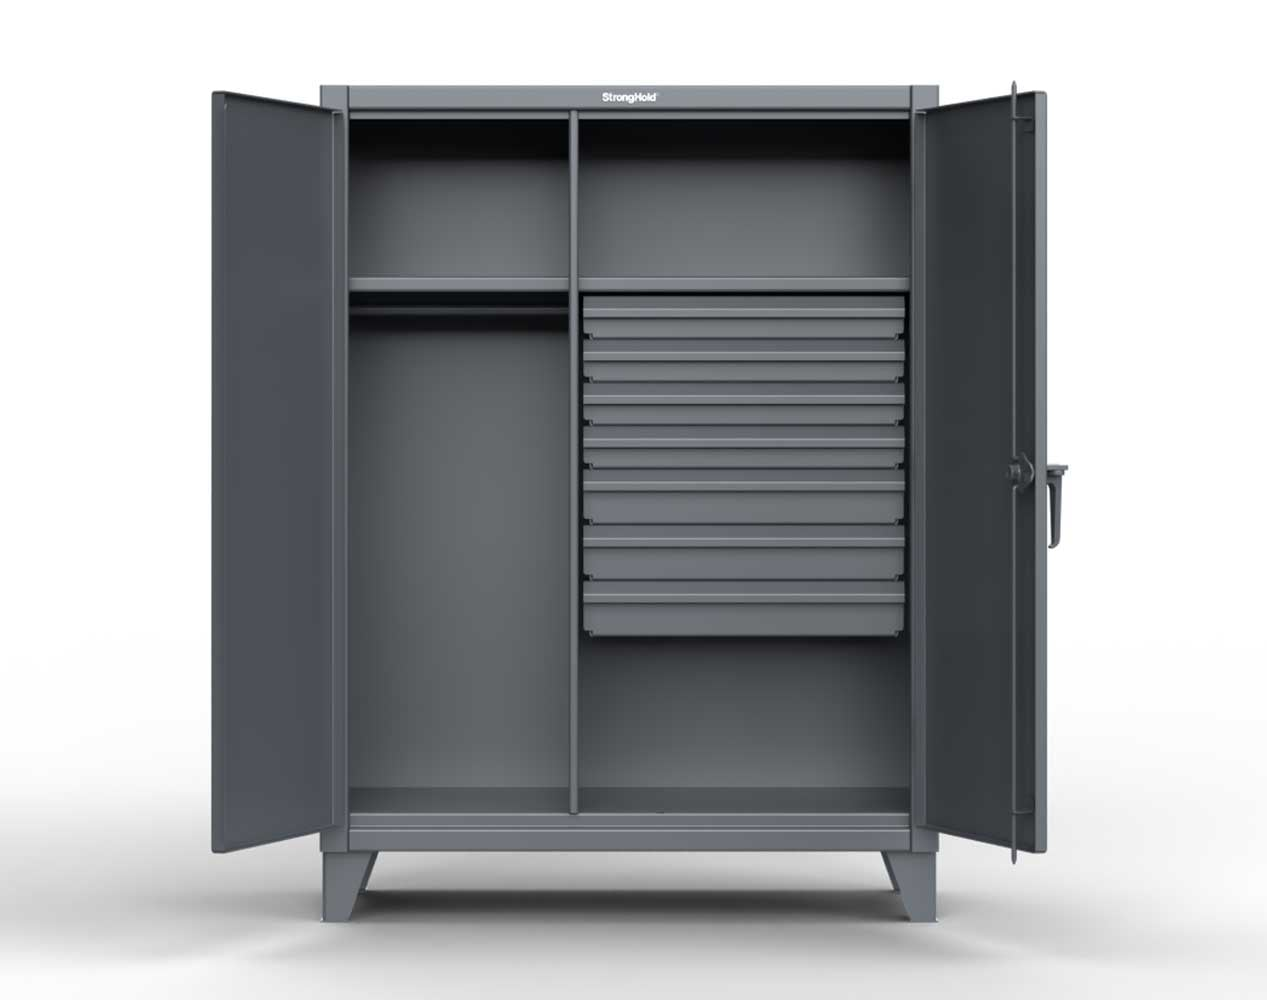 Extra Heavy Duty 12 GA Wardrobe Cabinet with 7 Drawers, 3 Shelves – 60 In. W x 24 In. D x 78 In. H